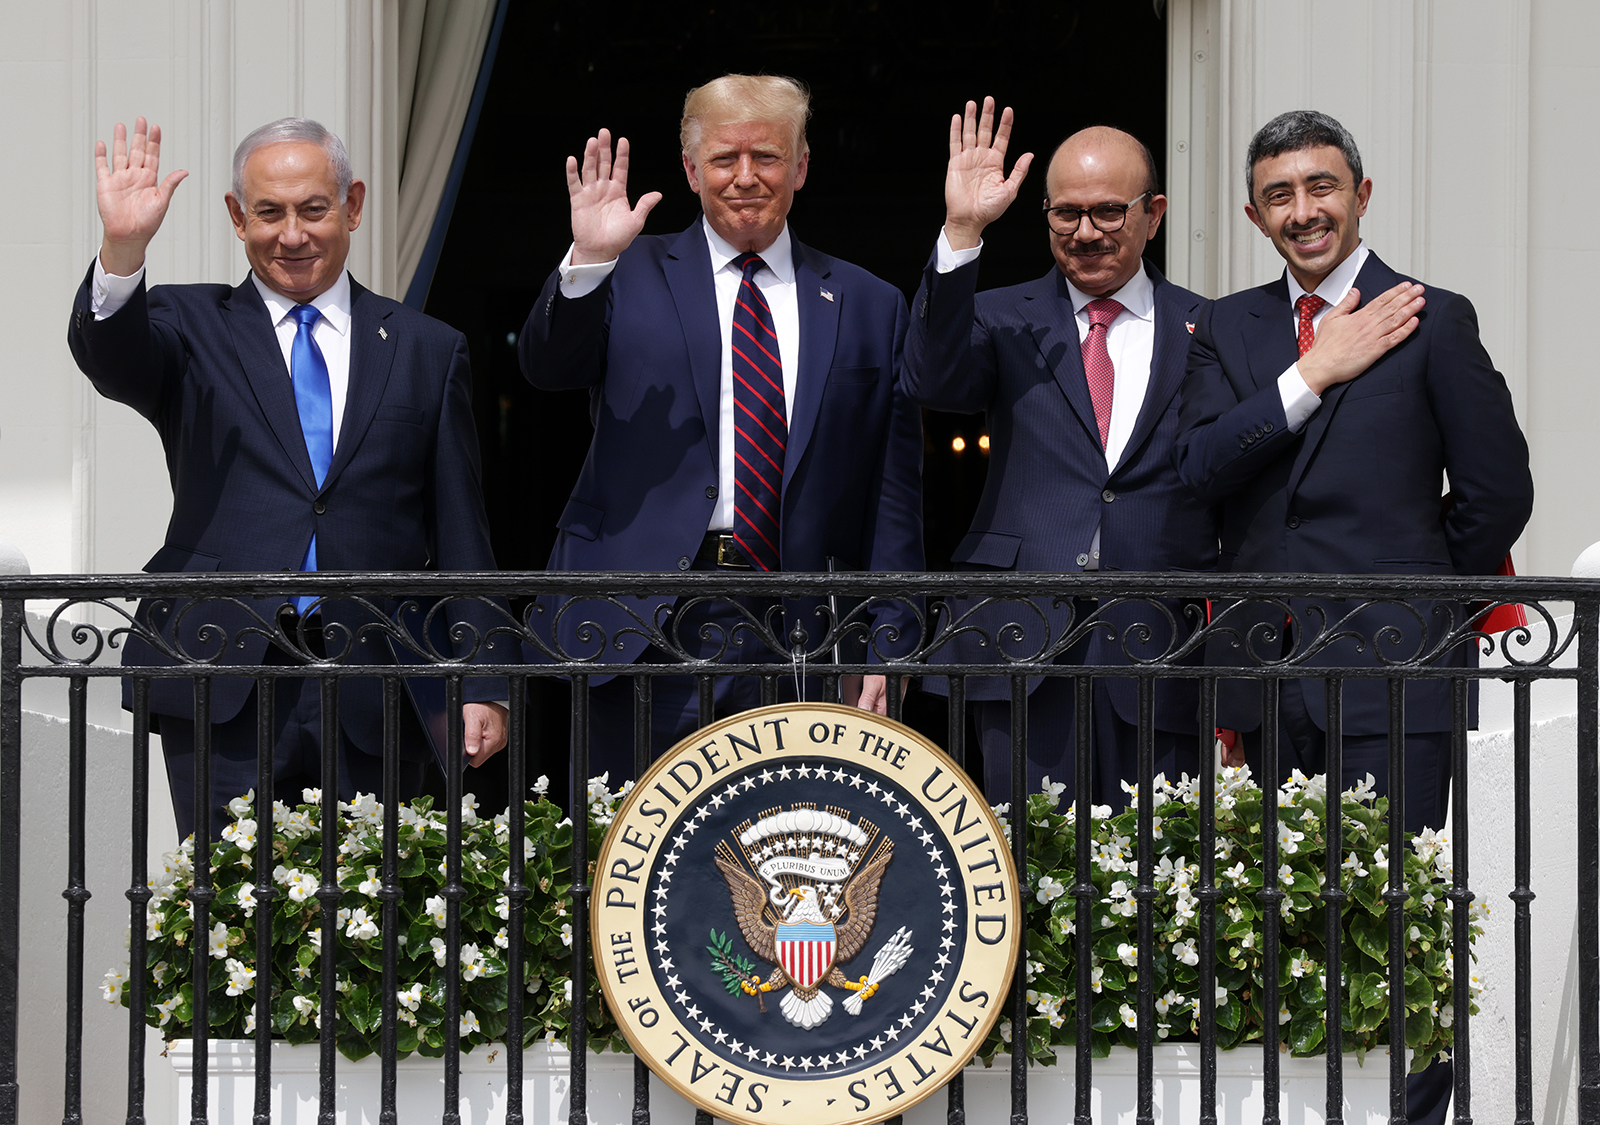 (Left to Right) Prime Minister of Israel Benjamin Netanyahu, US President Donald Trump, Foreign Affairs Minister of Bahrain Abdullatif bin Rashid Al Zayani, and Foreign Affairs Minister of the United Arab Emirates Abdullah bin Zayed bin Sultan Al Nahyan wave from the Truman Balcony of the White House on September 15 .